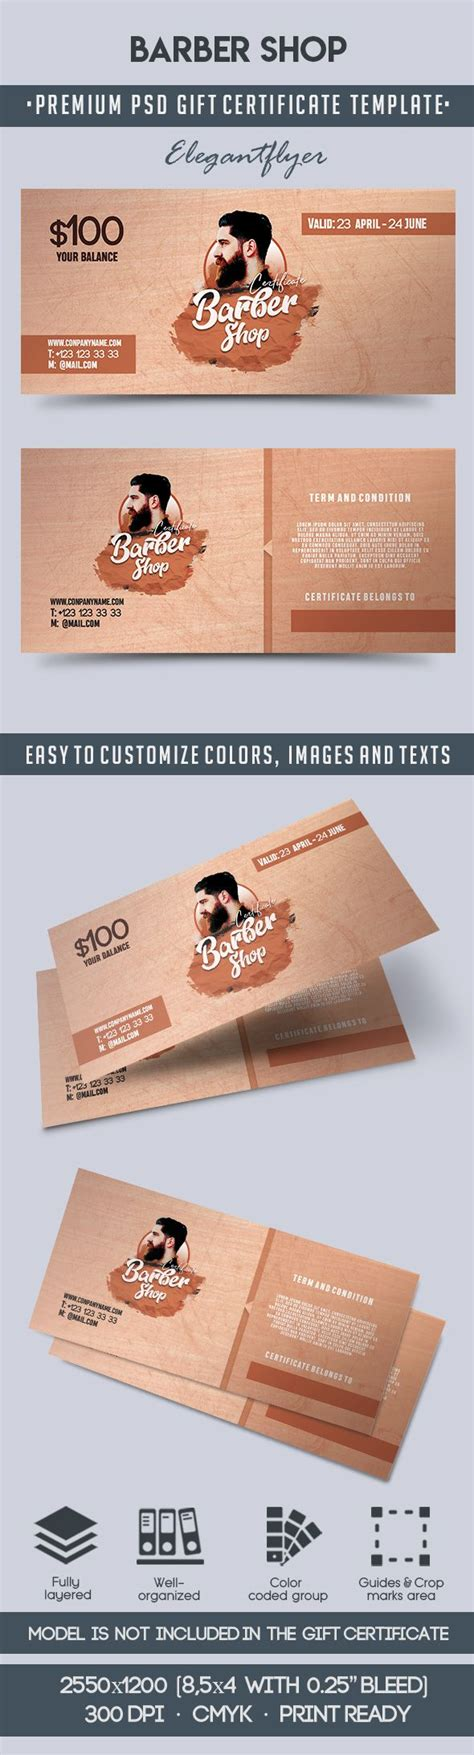 Barber Shop Gift Voucher By Elegantflyer Barber Shop Gift Certificate Template